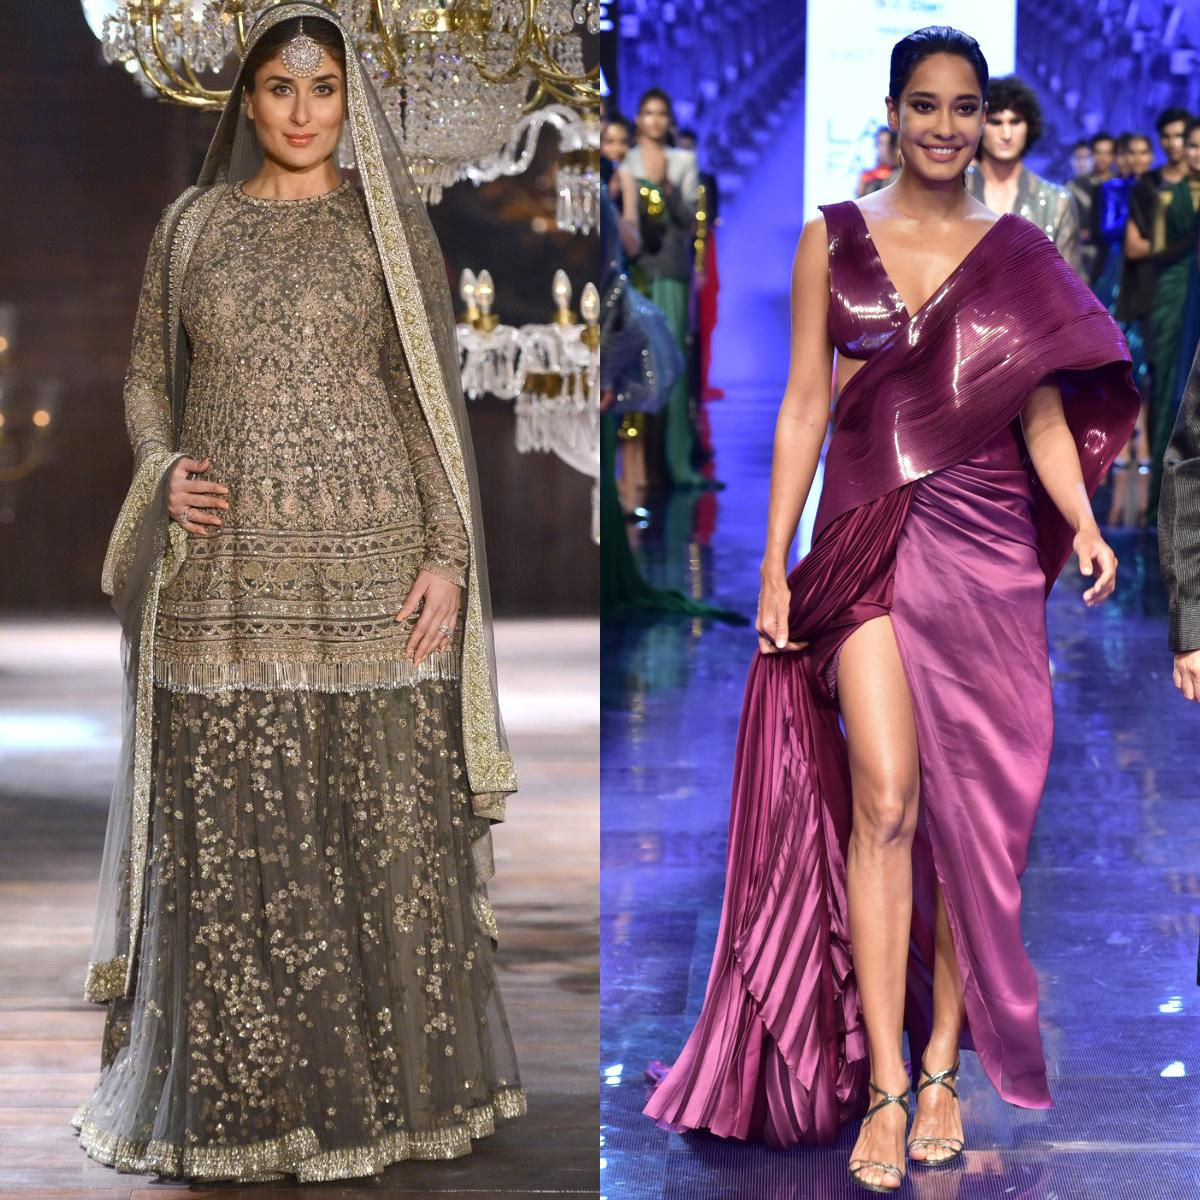 Kareena Kapoor Khan to Lisa Haydon, here's a list of actresses who walked the ramp & flaunted their baby bump